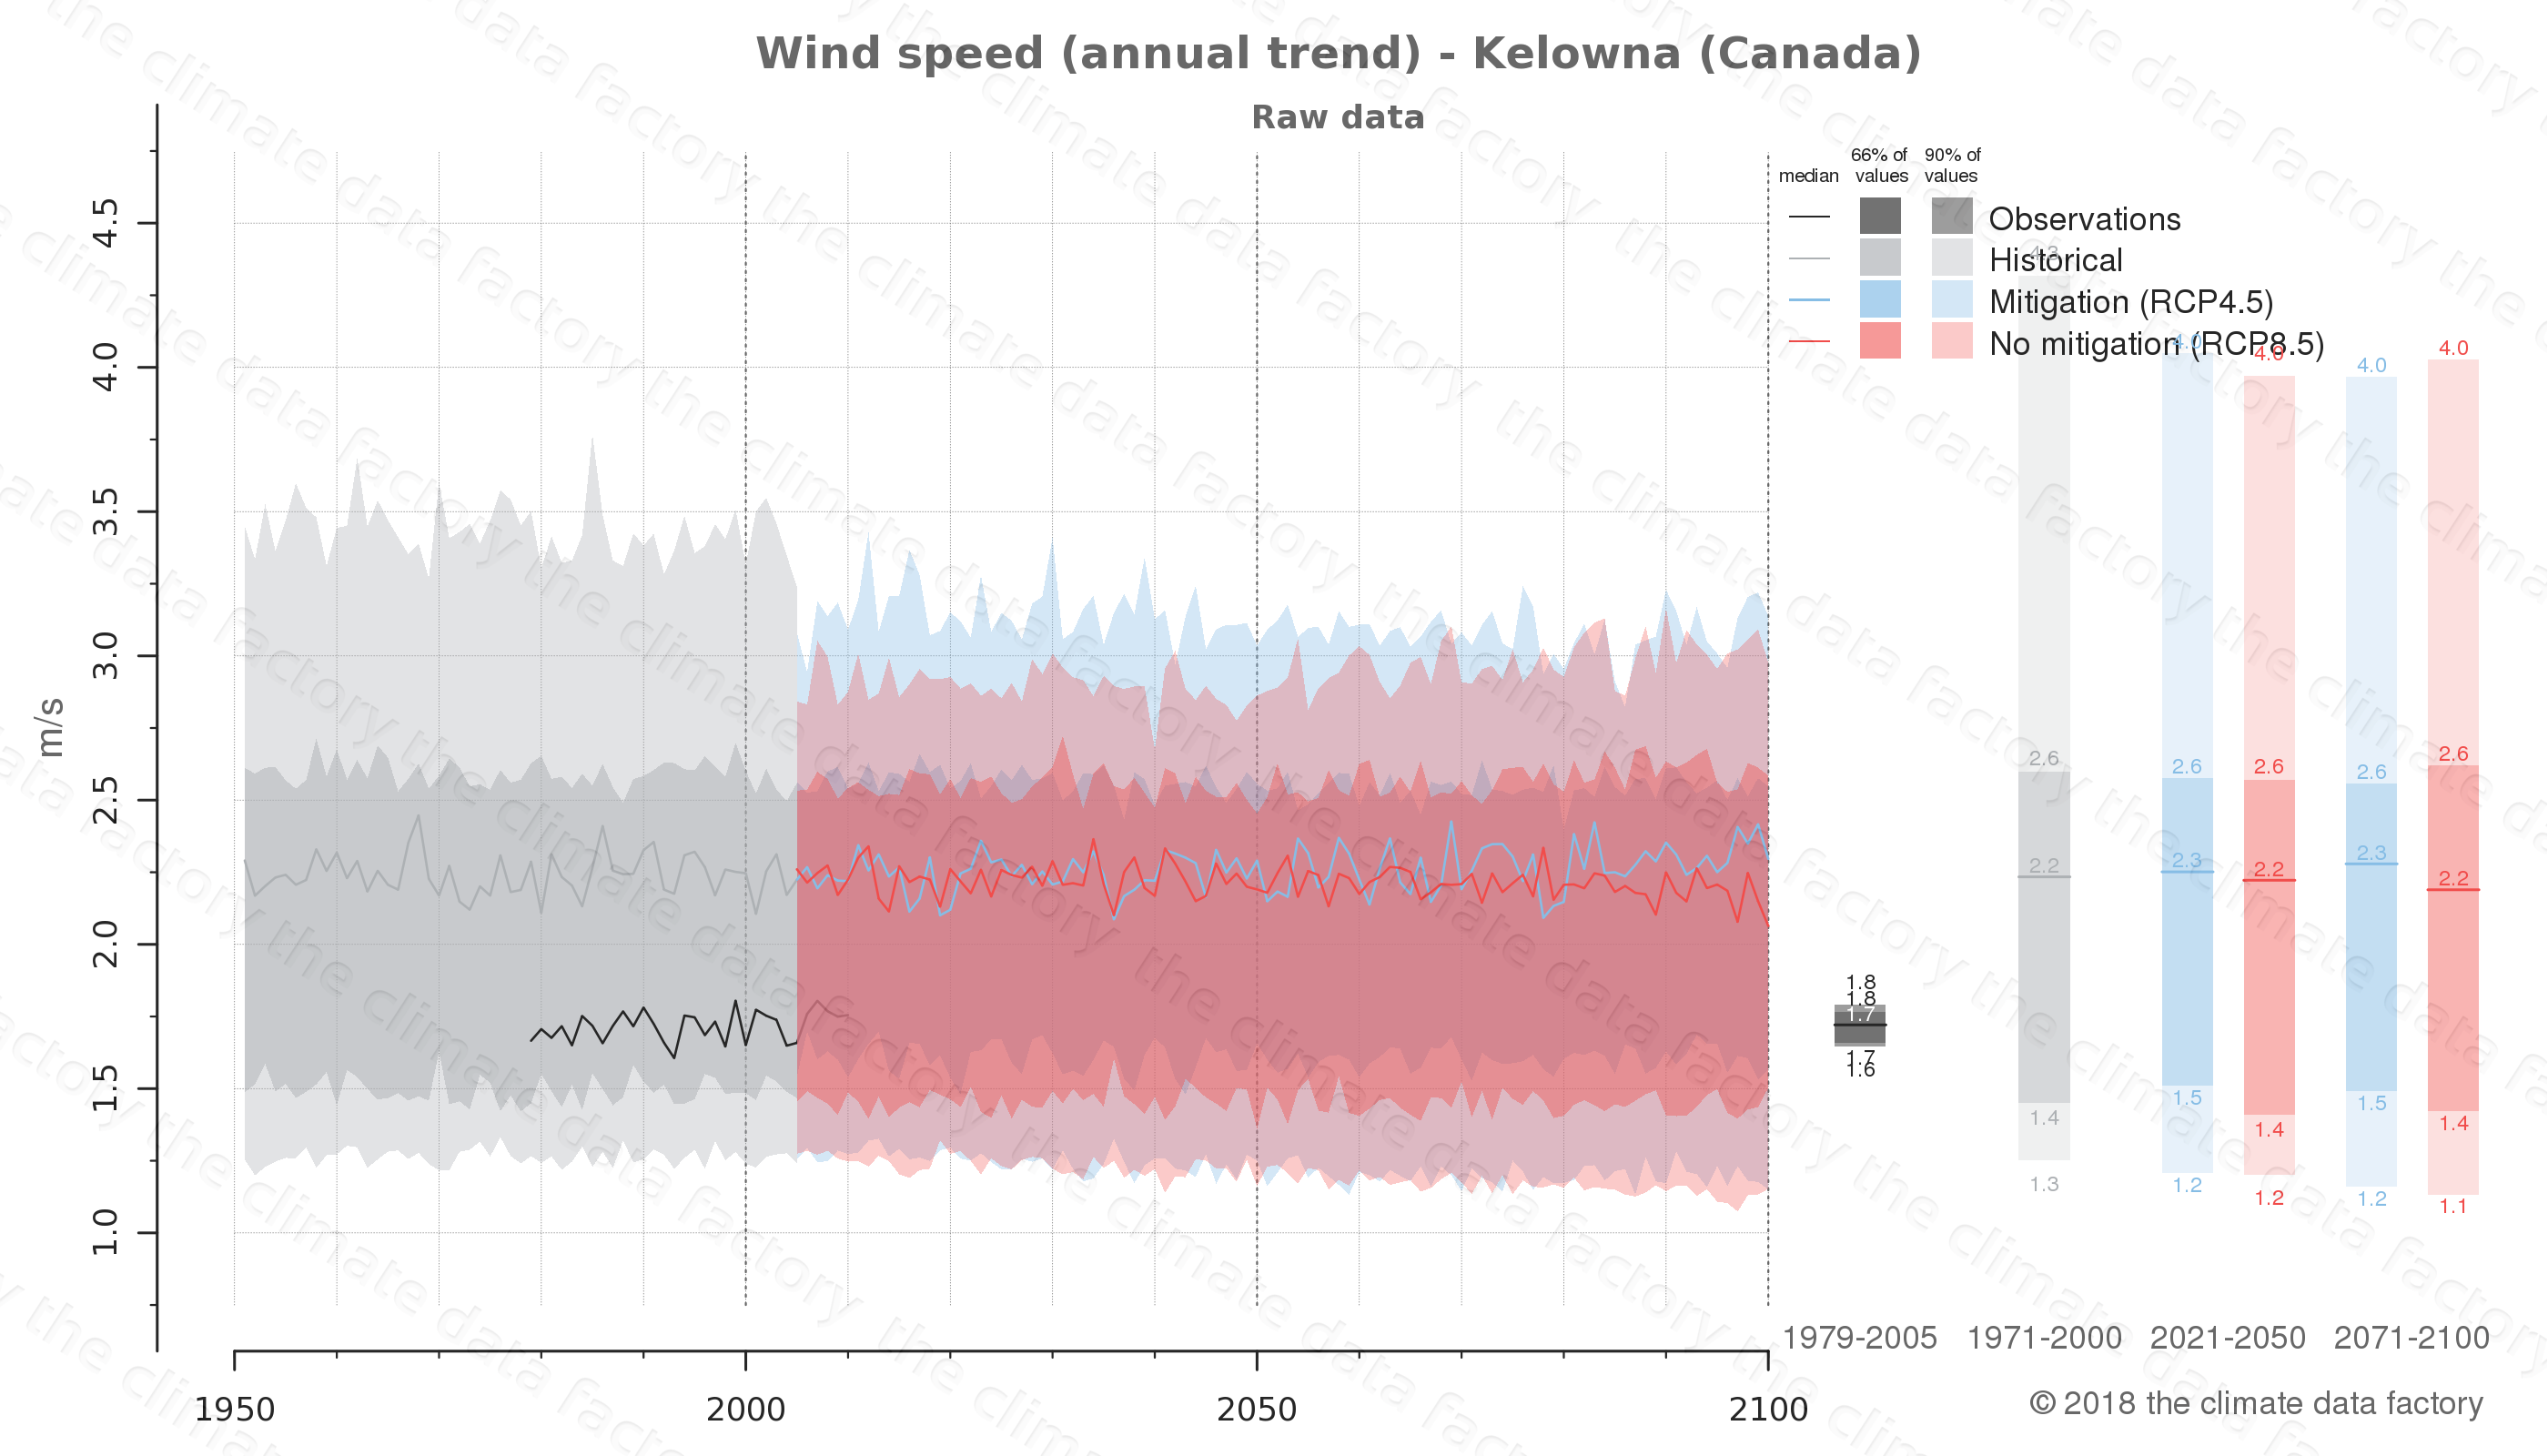 climate change data policy adaptation climate graph city data wind-speed kelowna canada